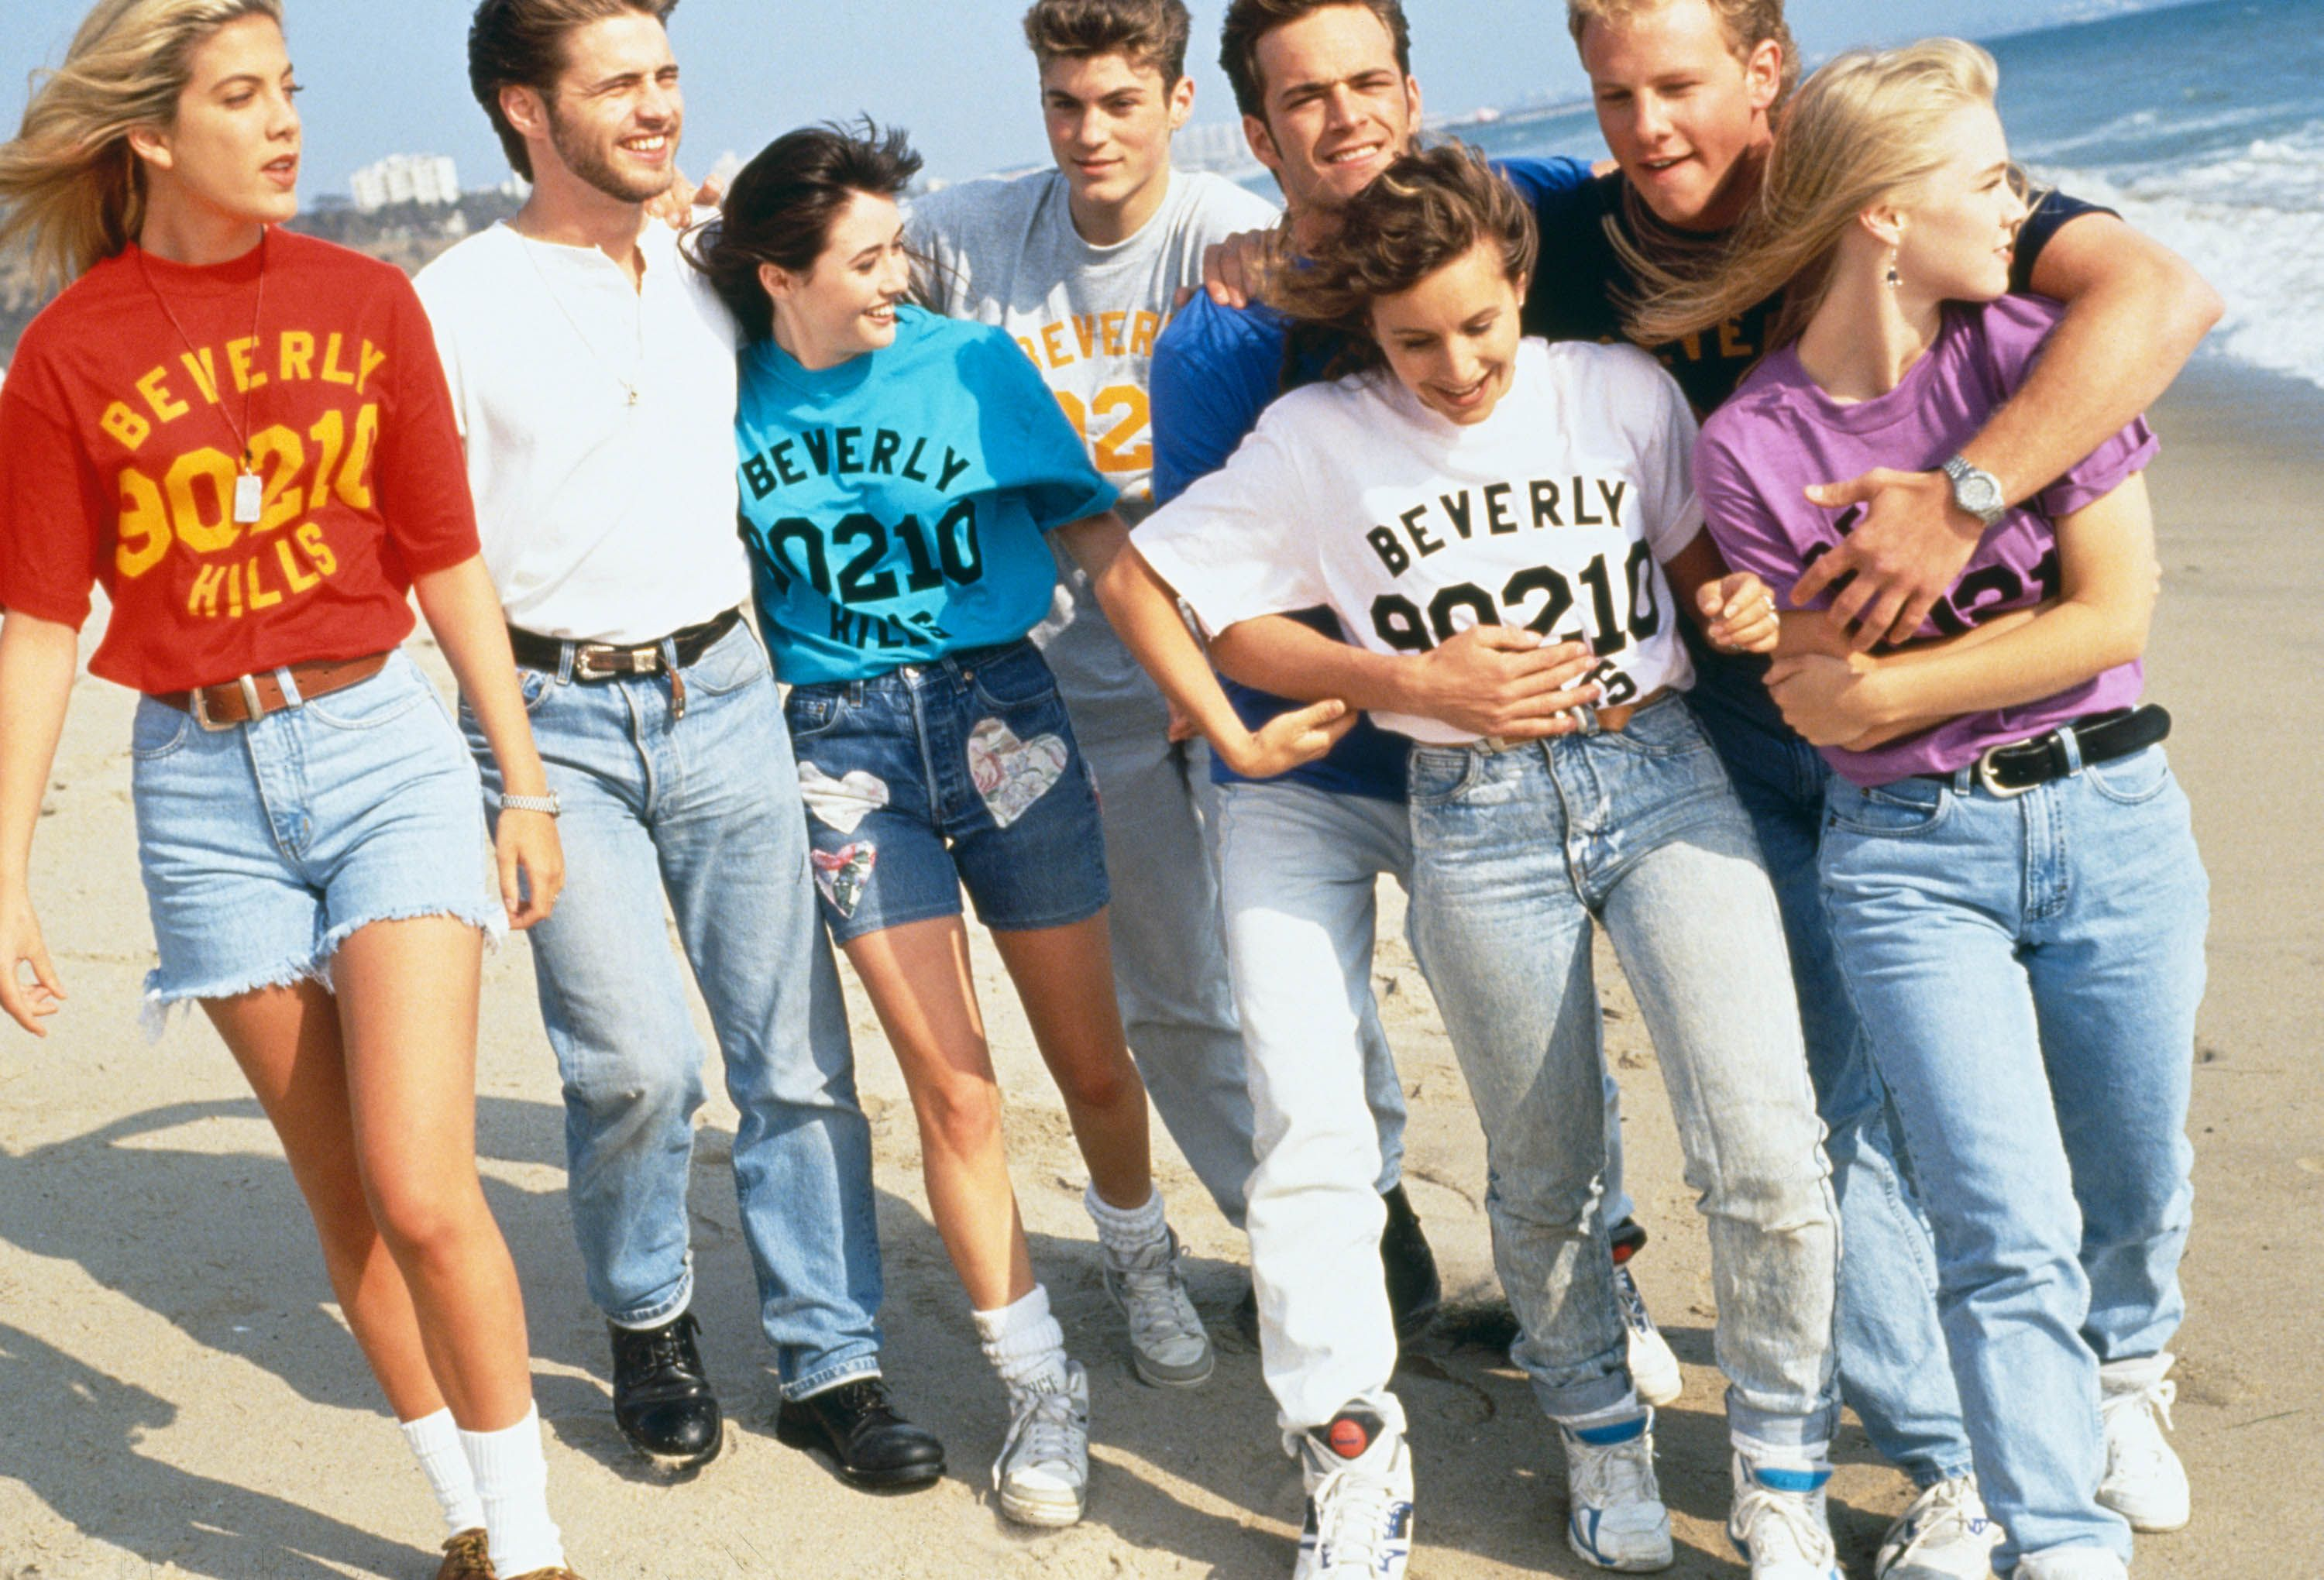 Cast of Beverly Hills, 90210 in 1991.